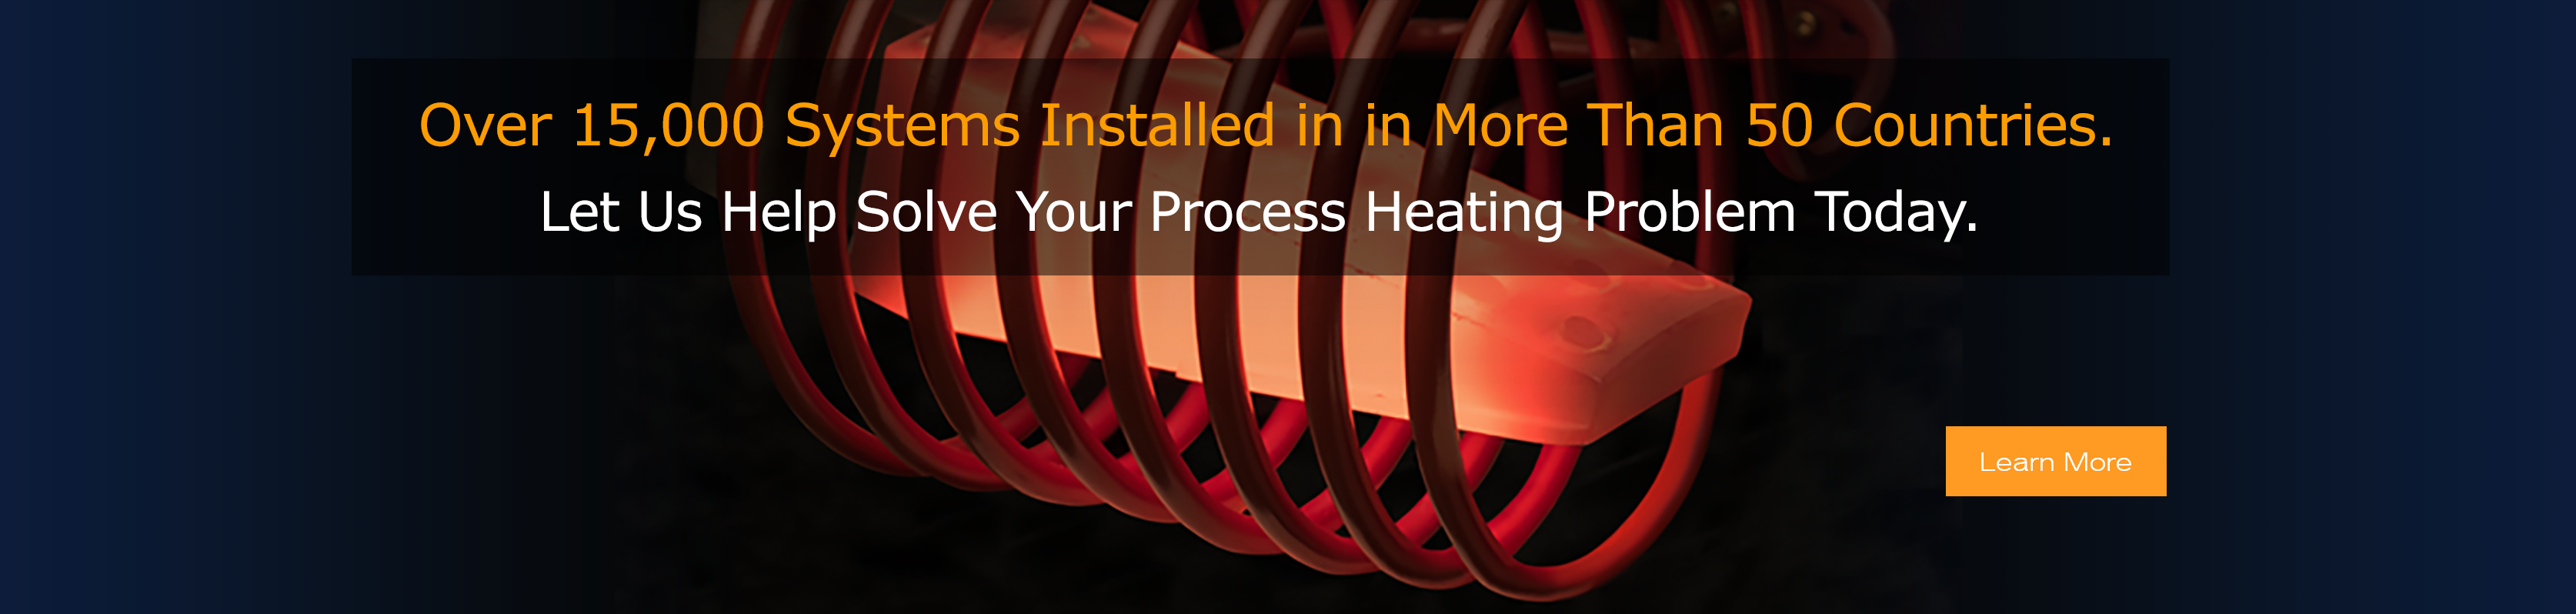 Let us help solve your process heating problem today